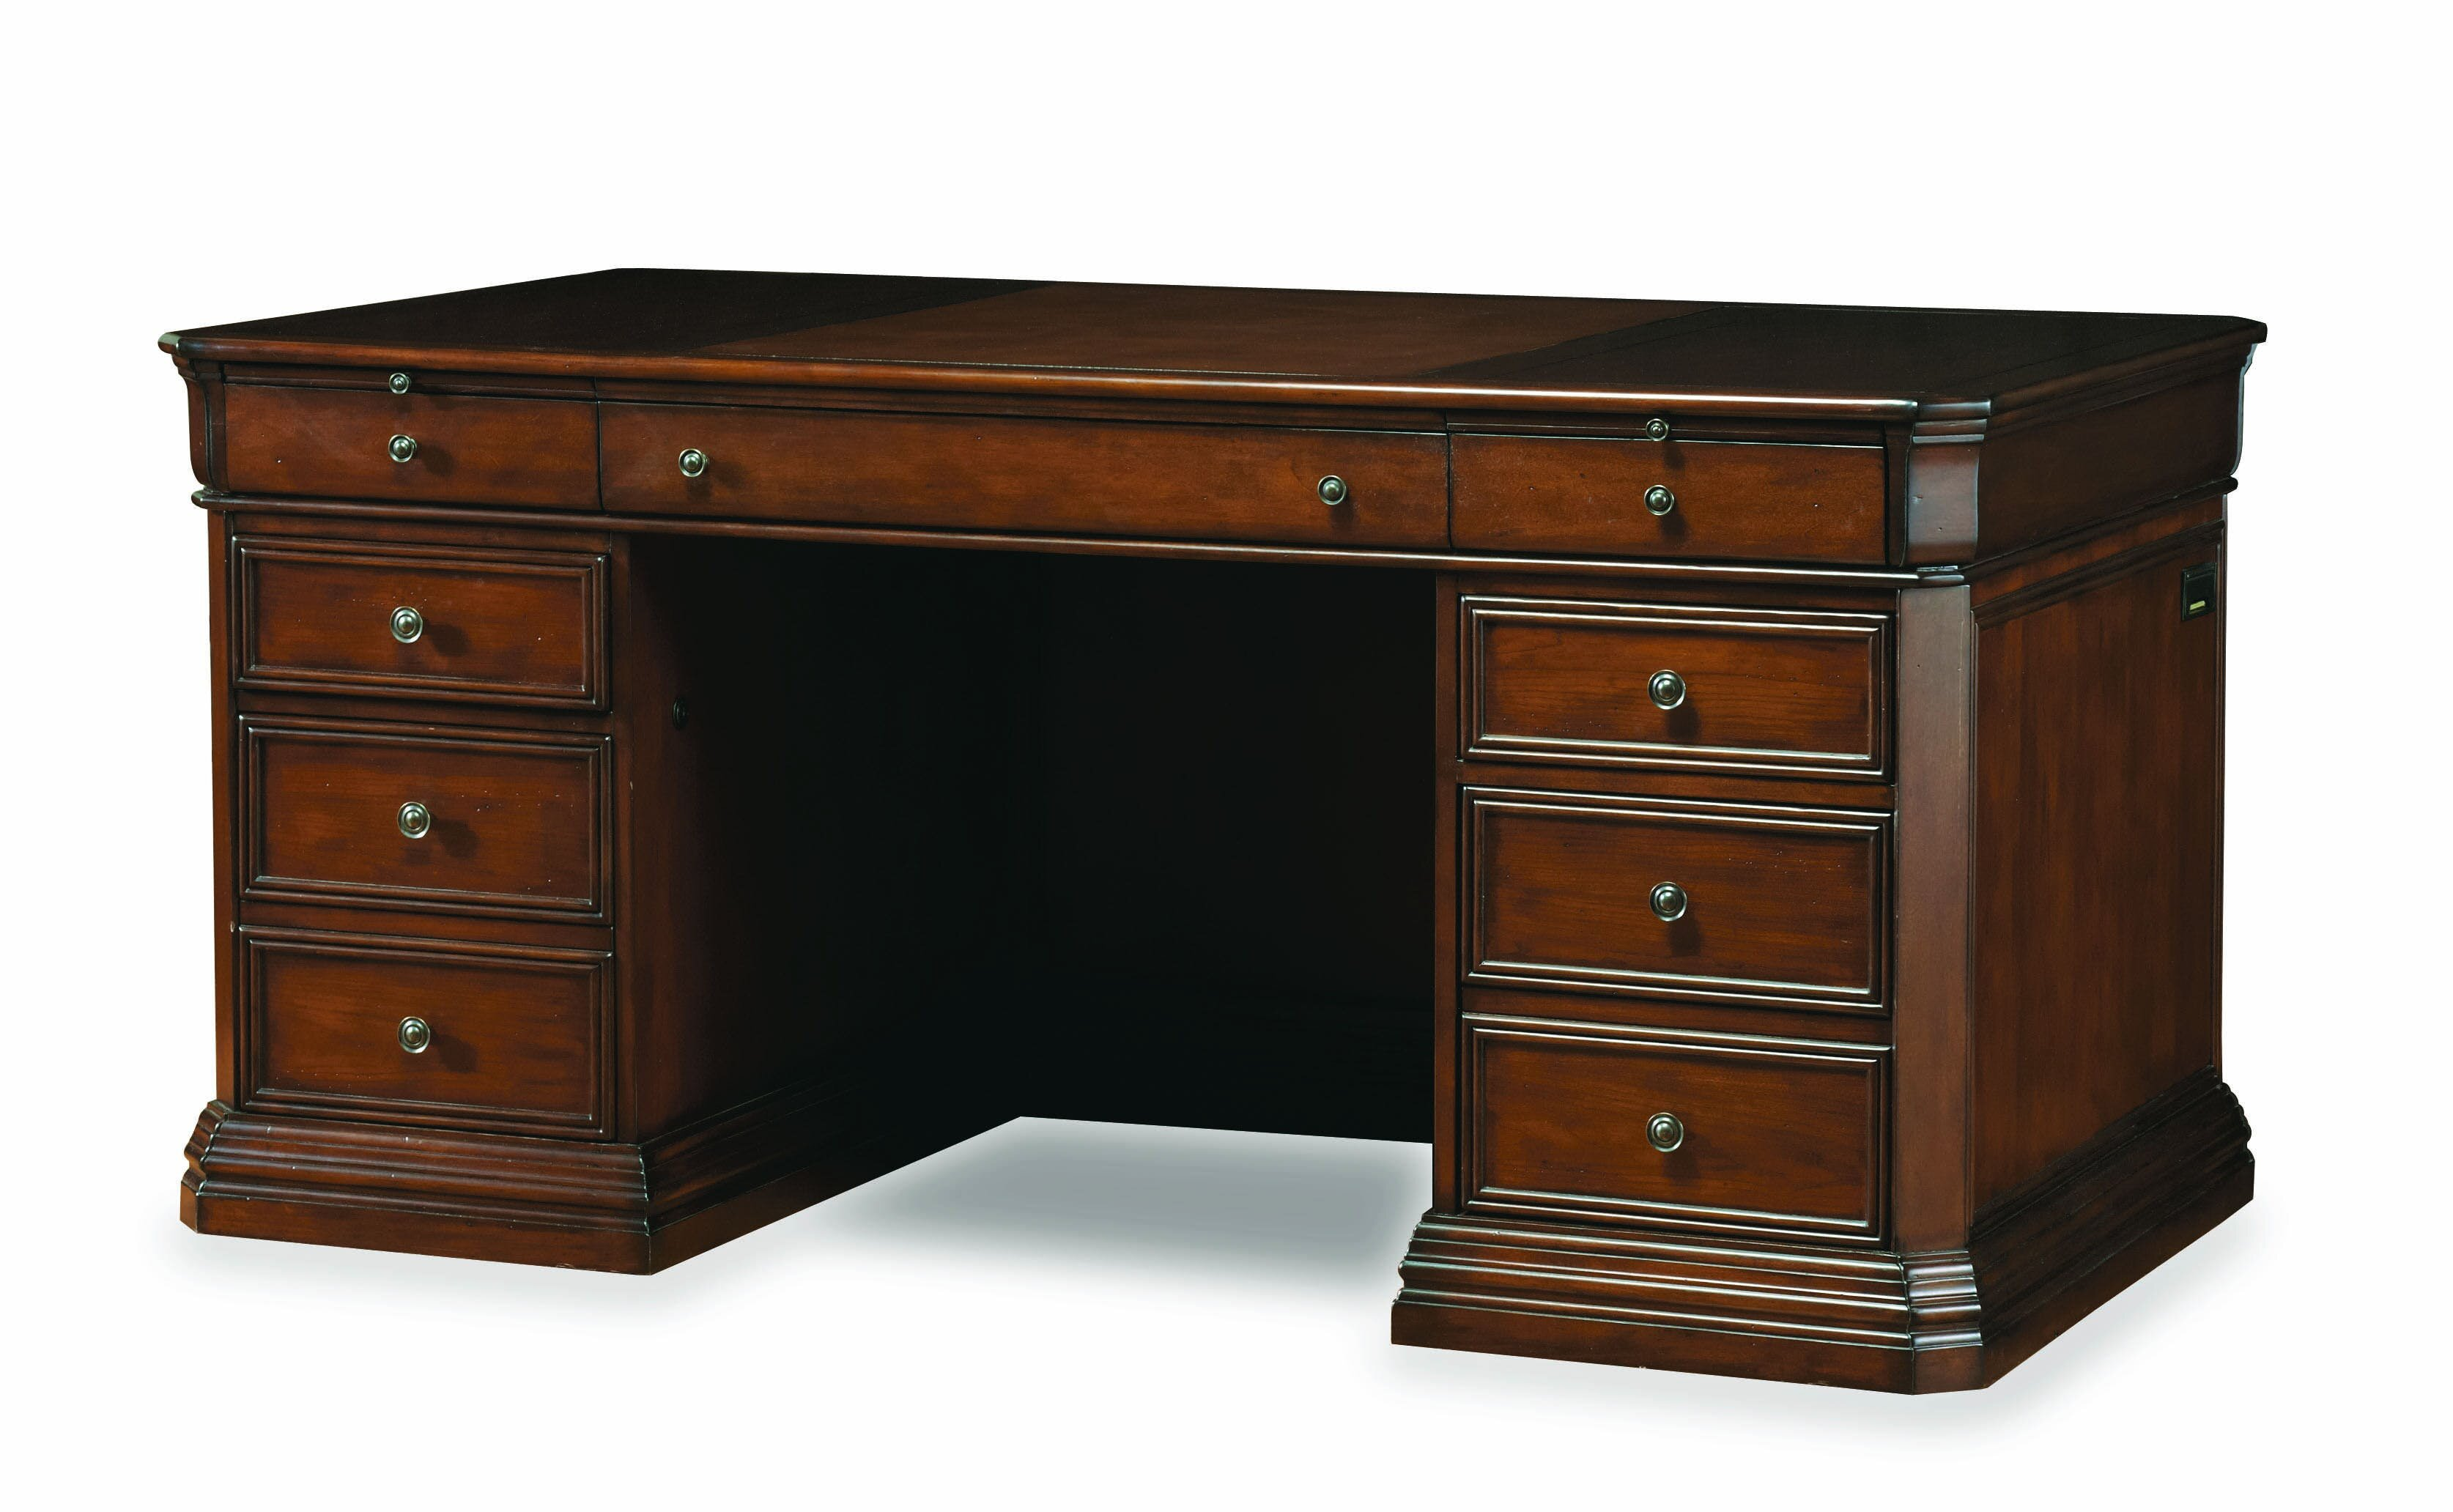 Hooker Furniture Cherry Creek Executive Desk & Reviews | Wayfair